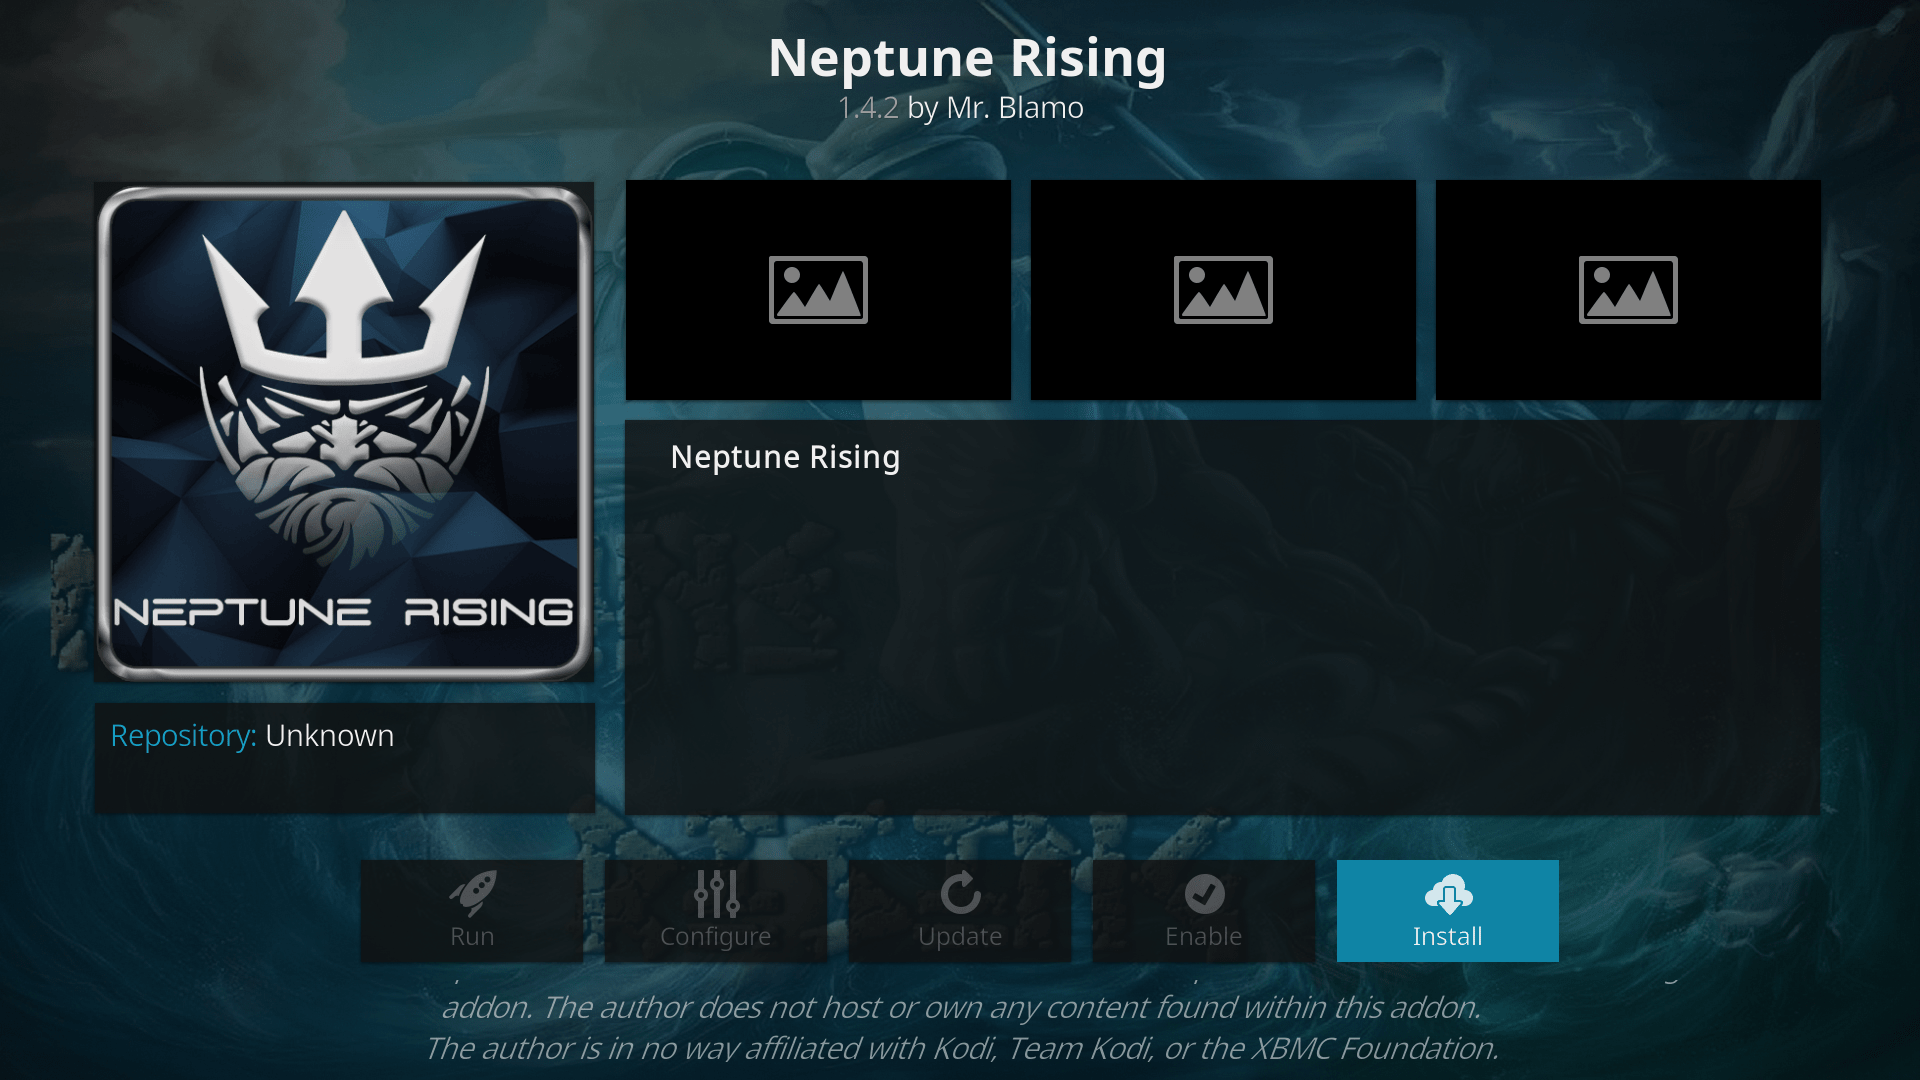 How to Install Neptune Rising Kodi Addon in Easy Steps